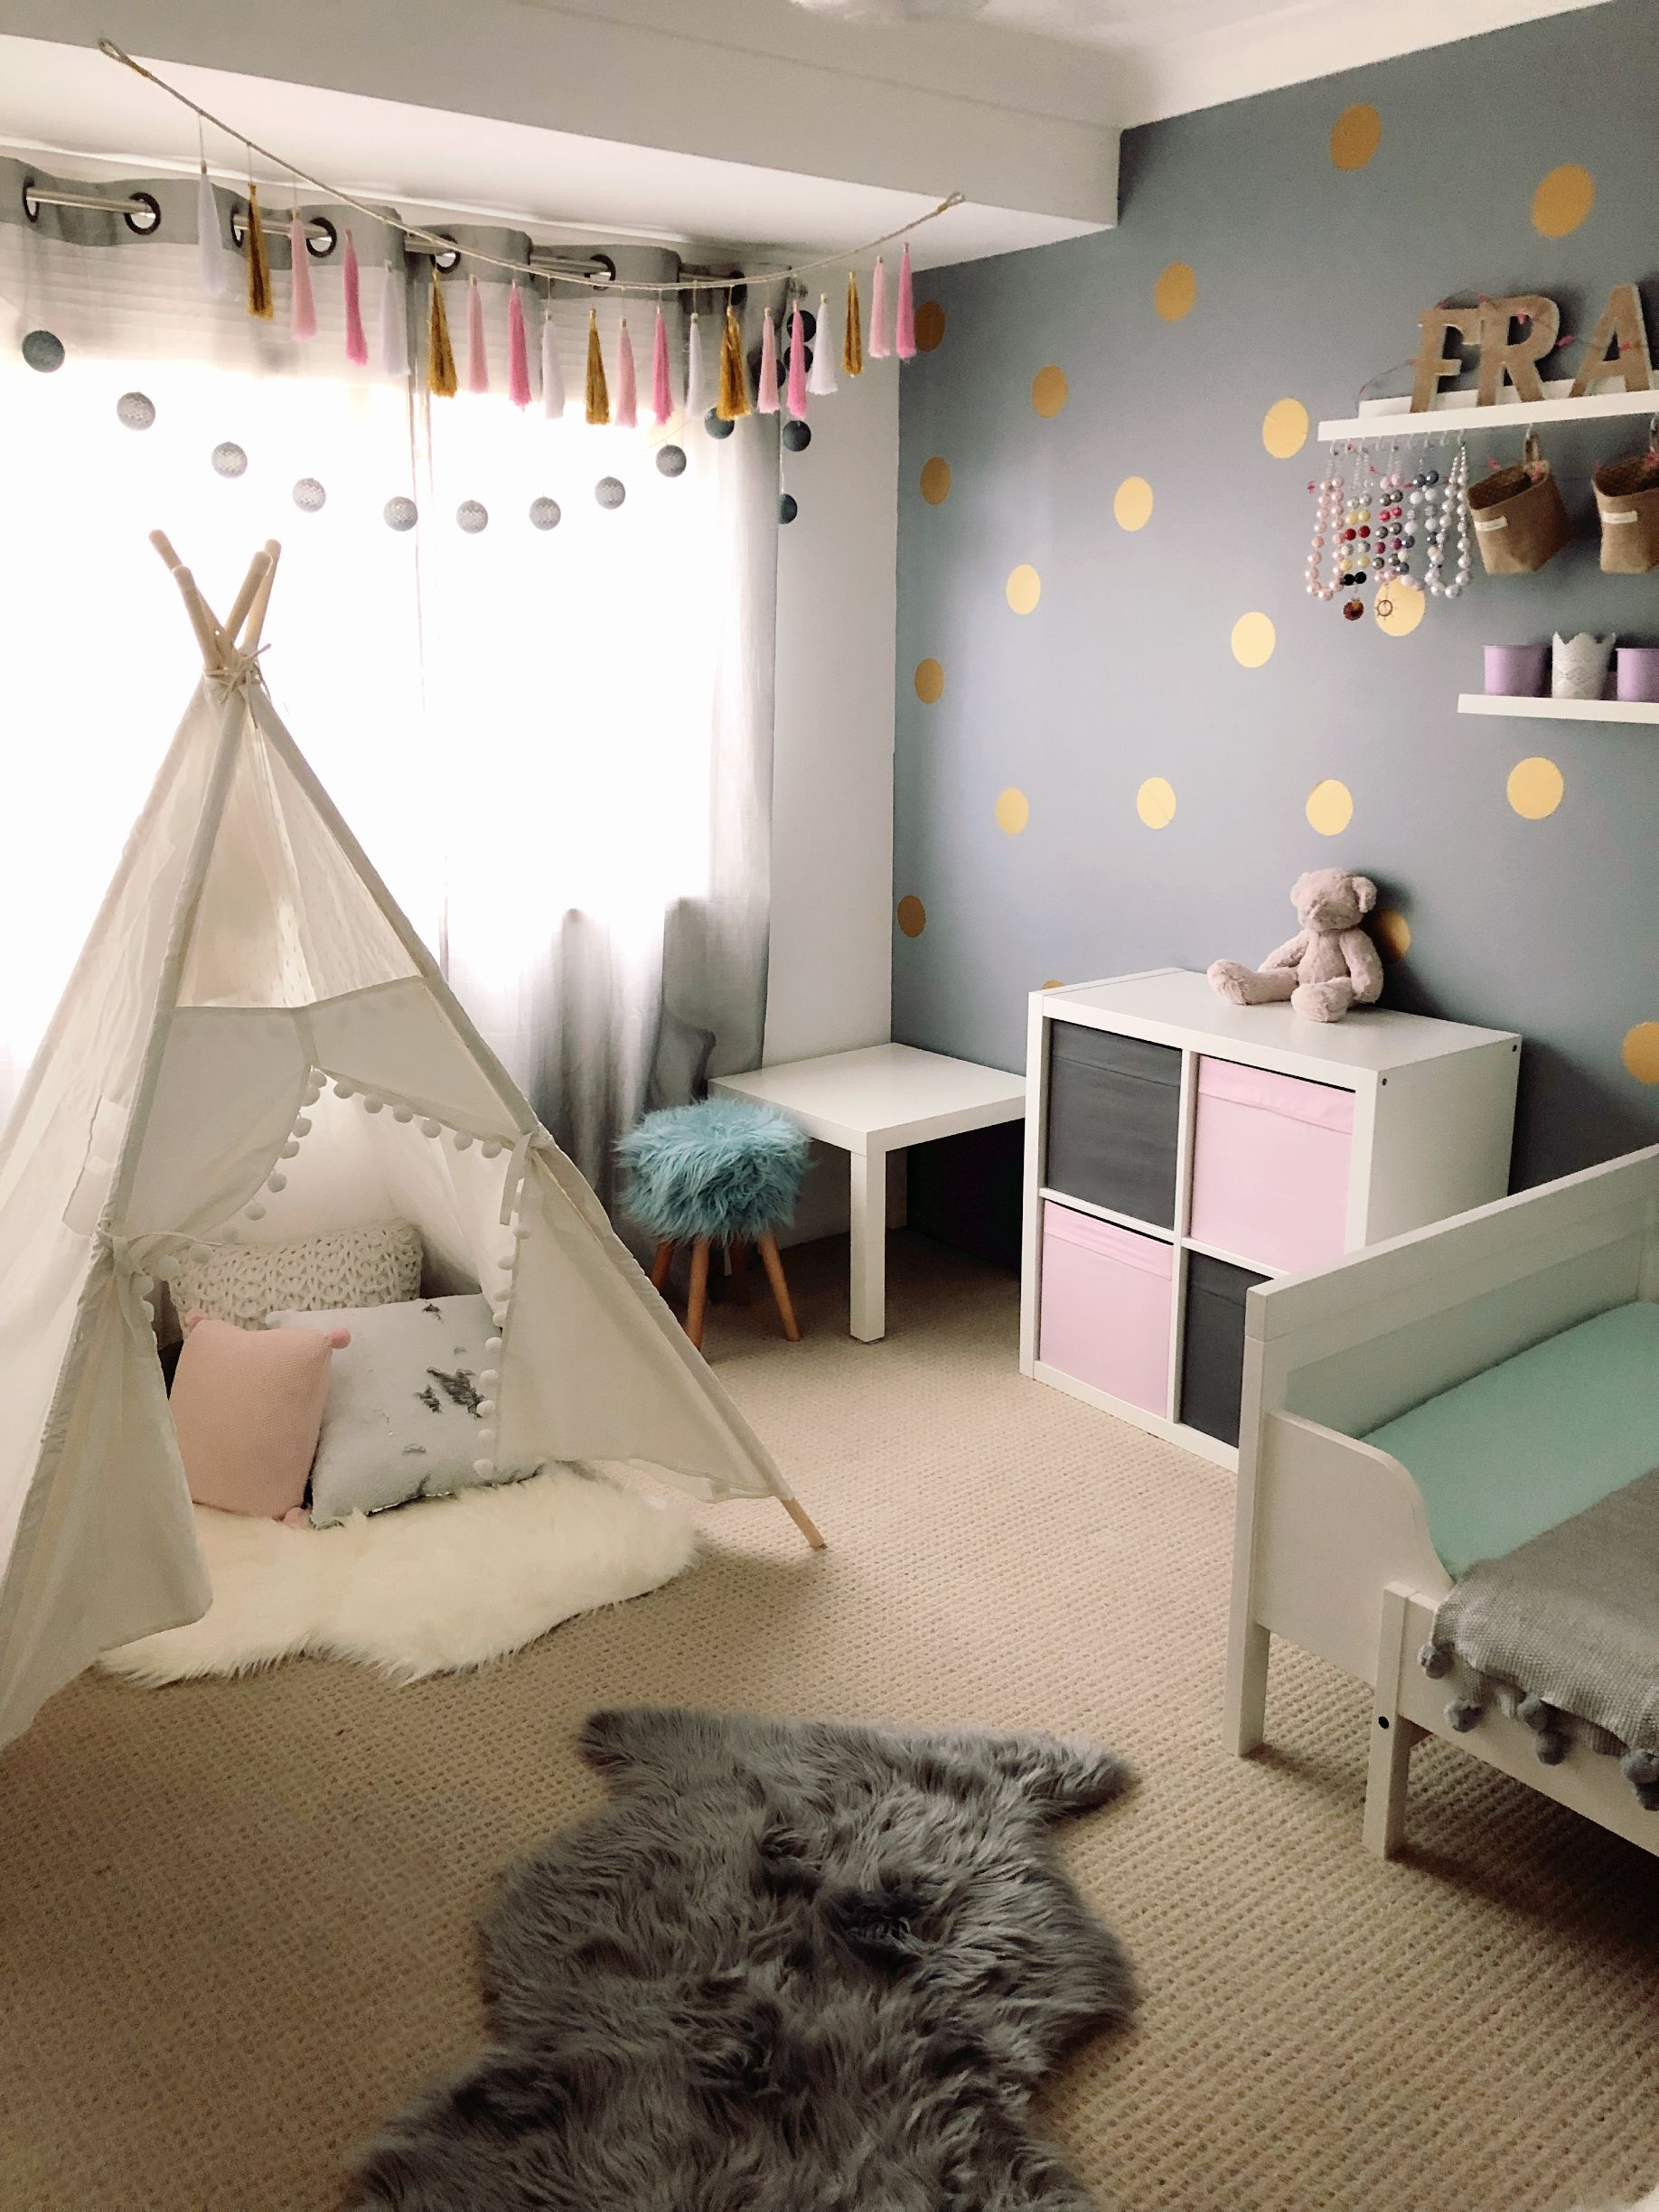 Pin De Kathryn Em Dream House 2019 Kids Bedroom